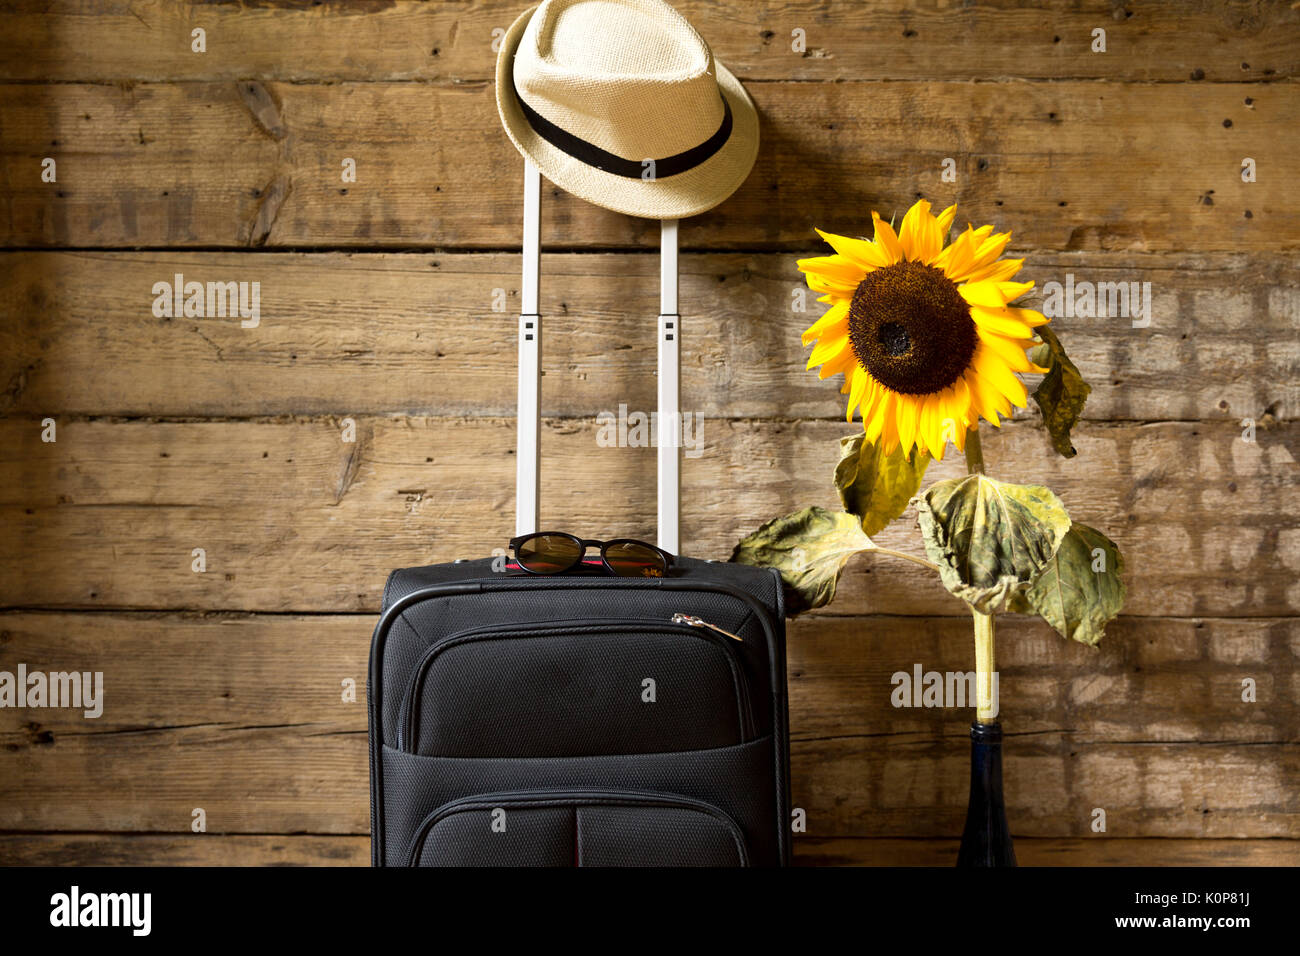 Suitcase Hipster Hat Sunflower And Sunglasses On Wooden Wall Background